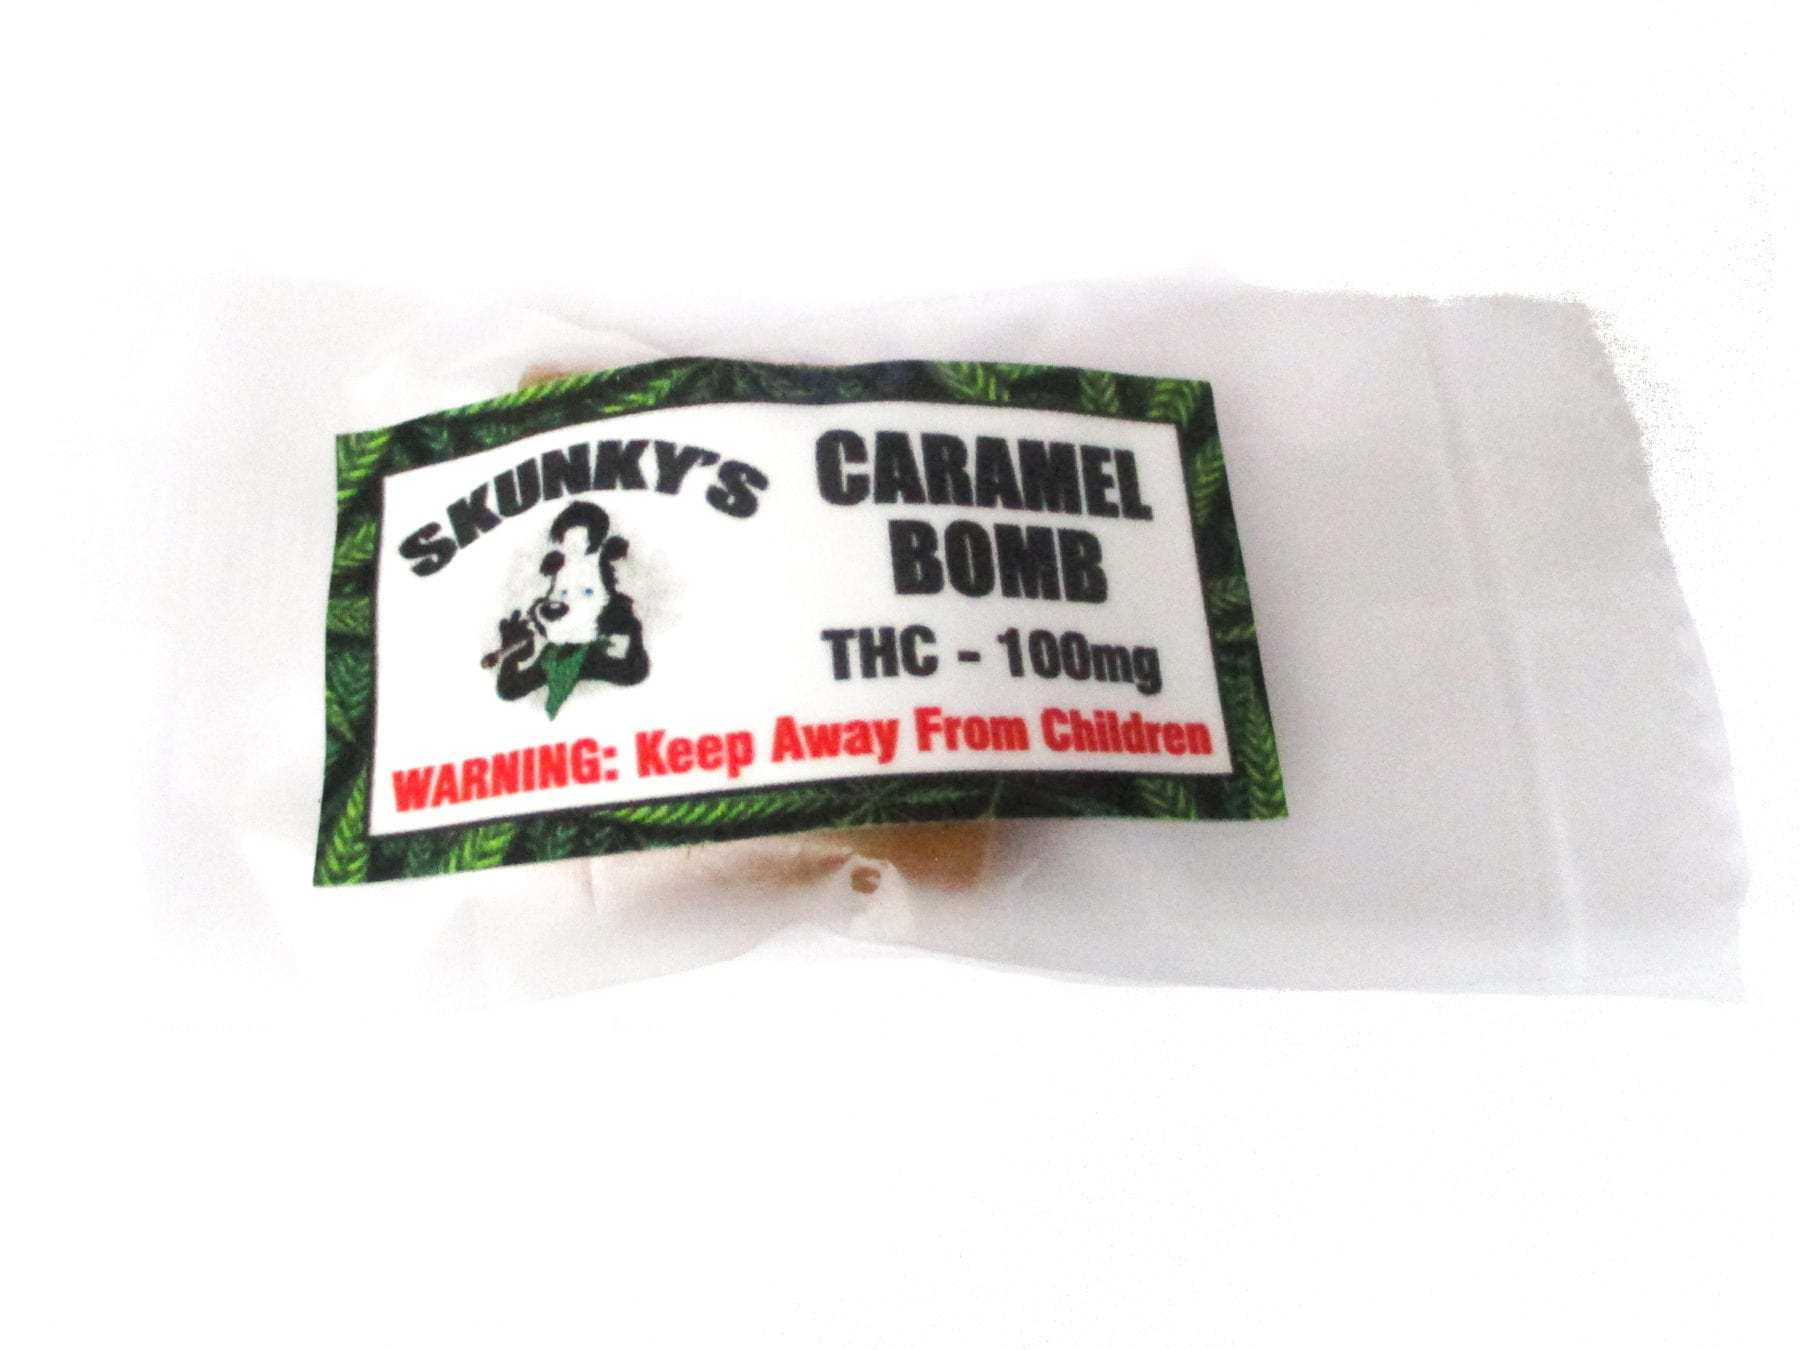 Skunkys Caramel Bomb (100mg of THC) by Kana Post - Image © 2020 Kana Post. All Rights Reserved.